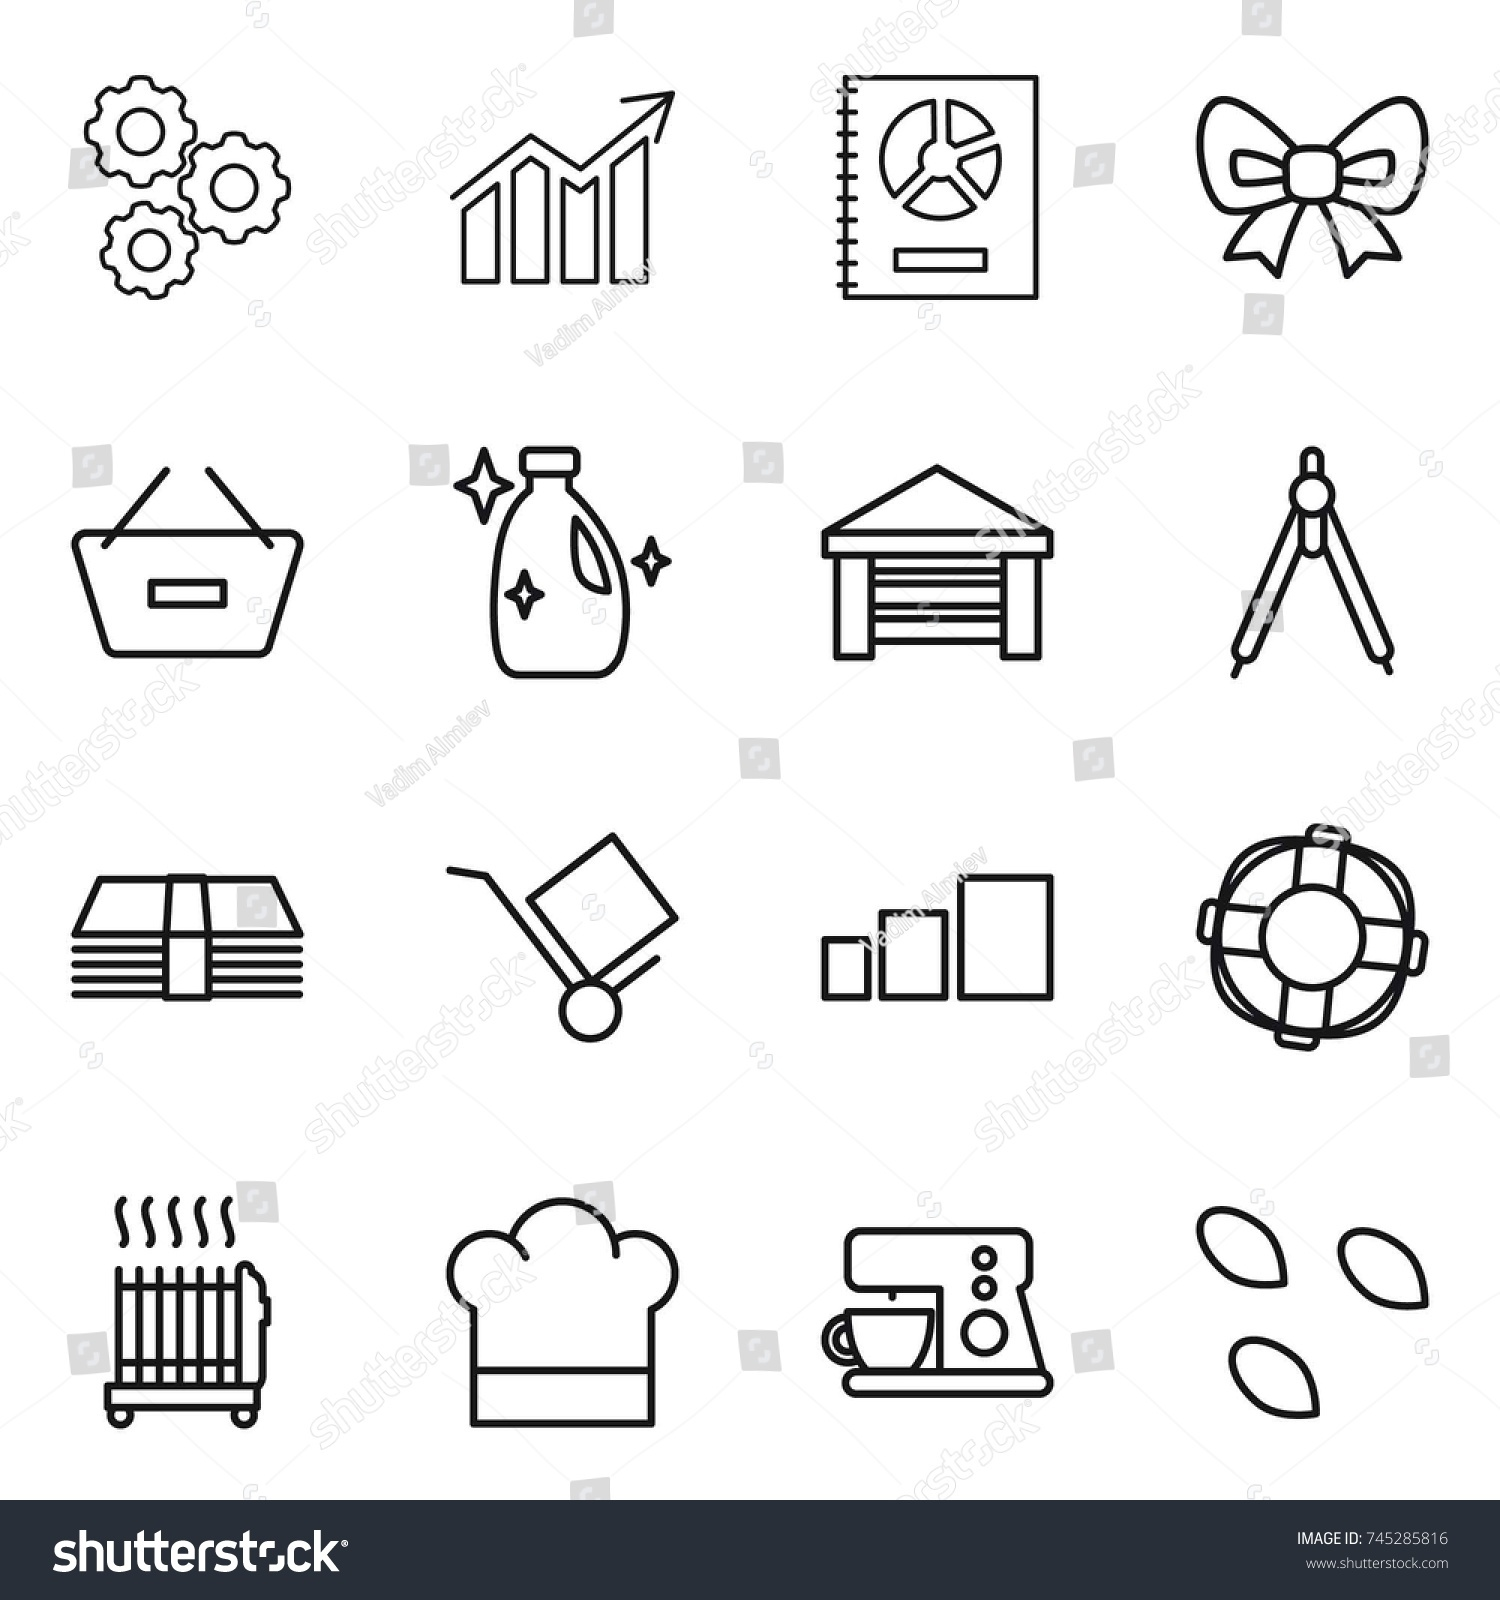 hight resolution of thin line icon set gear diagram annual report bow remove from